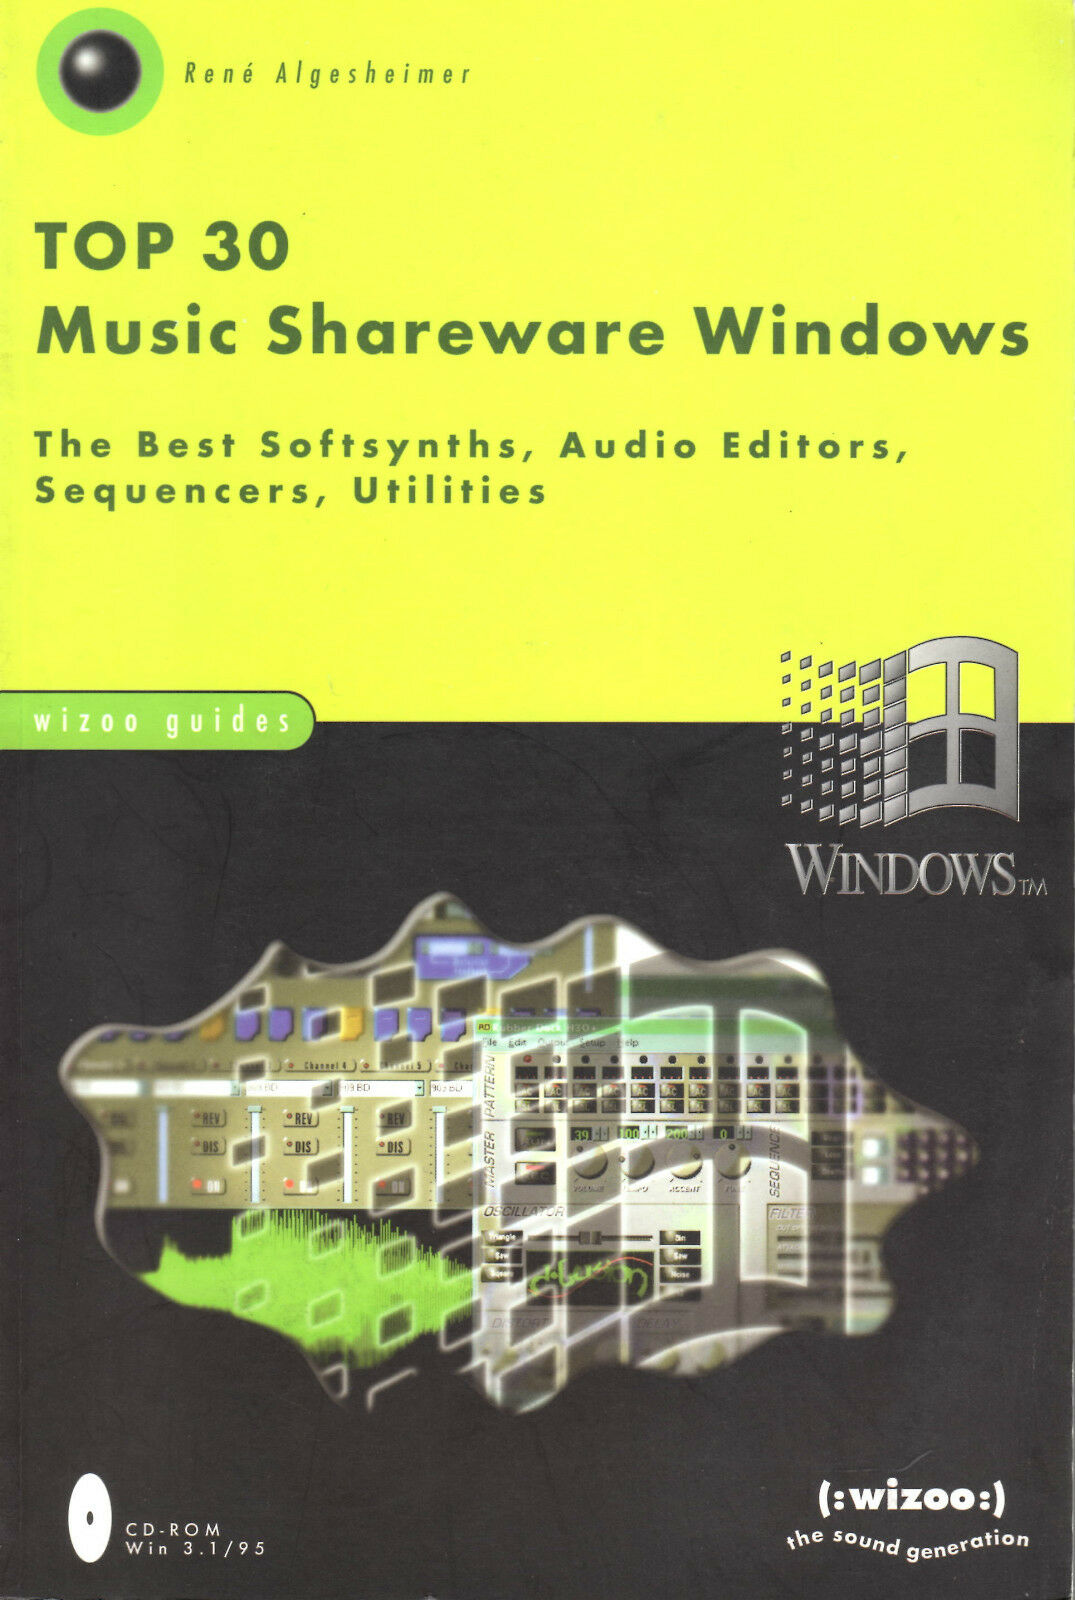 Top 30 Music Shareware Windows:Wizoo Guide by Rene Algesheimer(Book/CD-ROM) NEW |